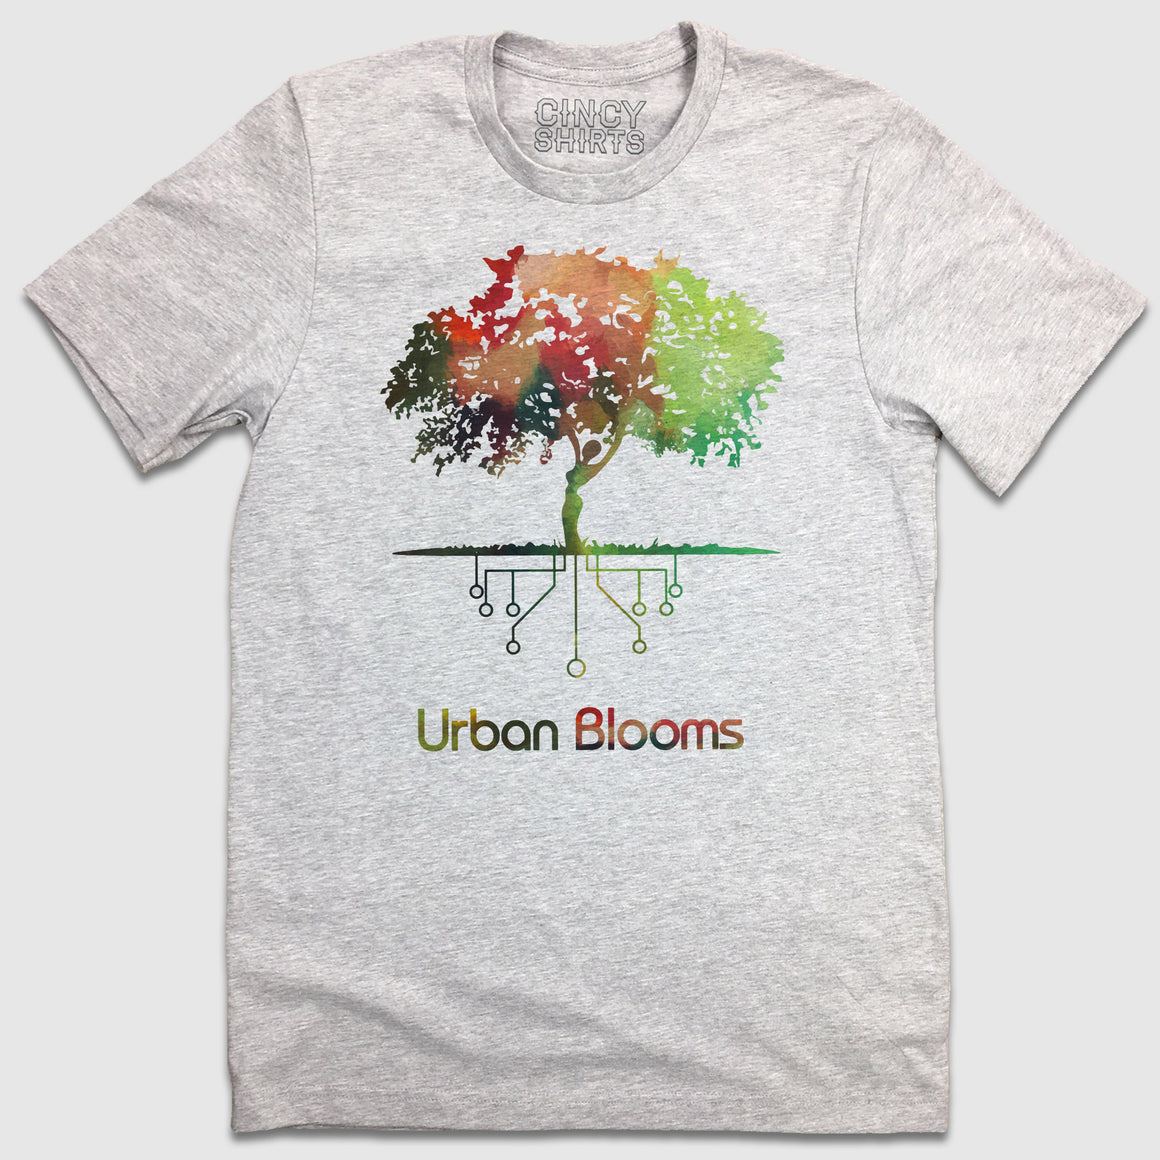 Urban Blooms - Cincy Shirts